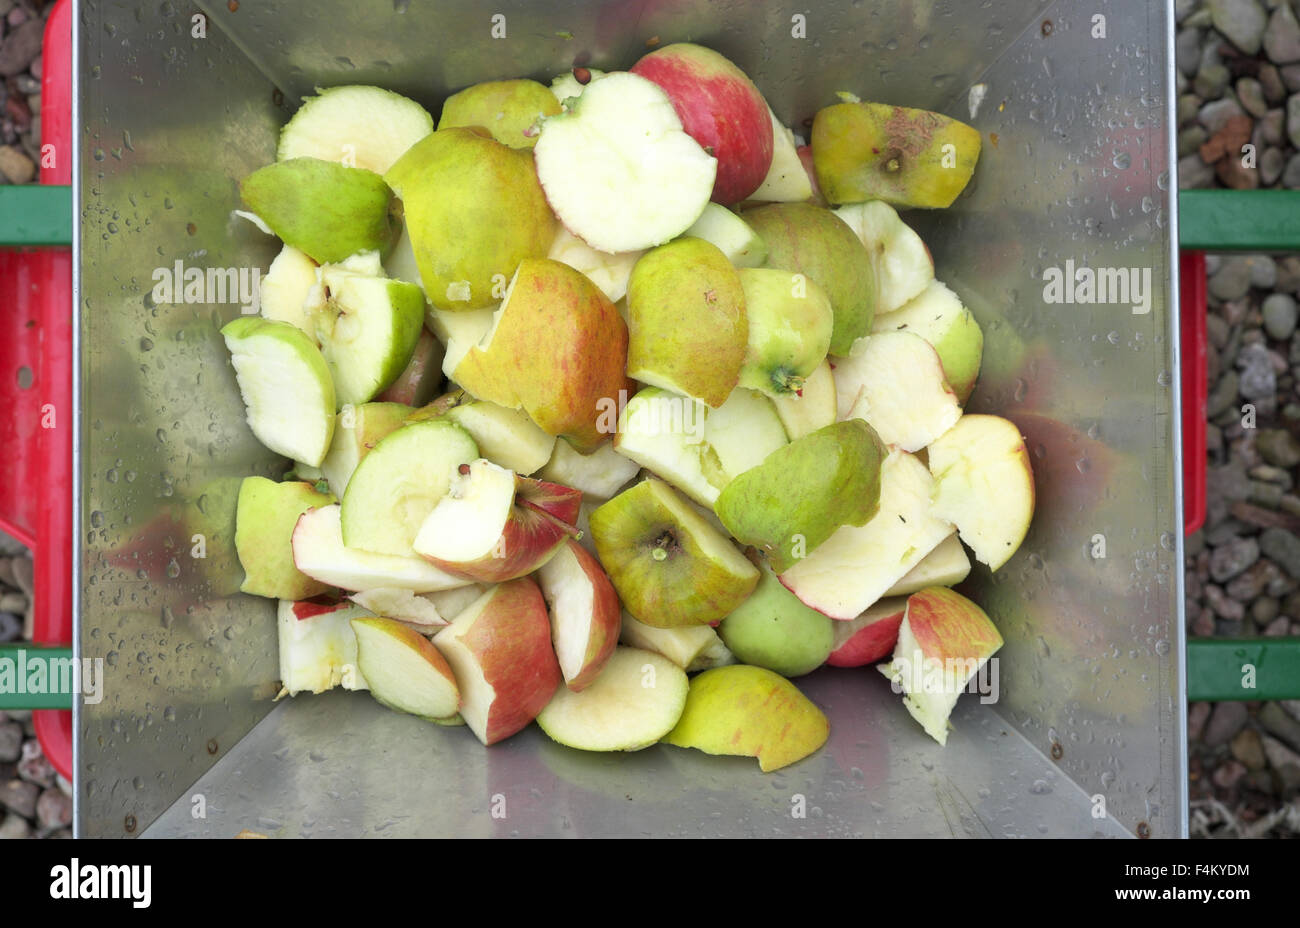 cut apples in the hopper of an apple scratter that will pulp the